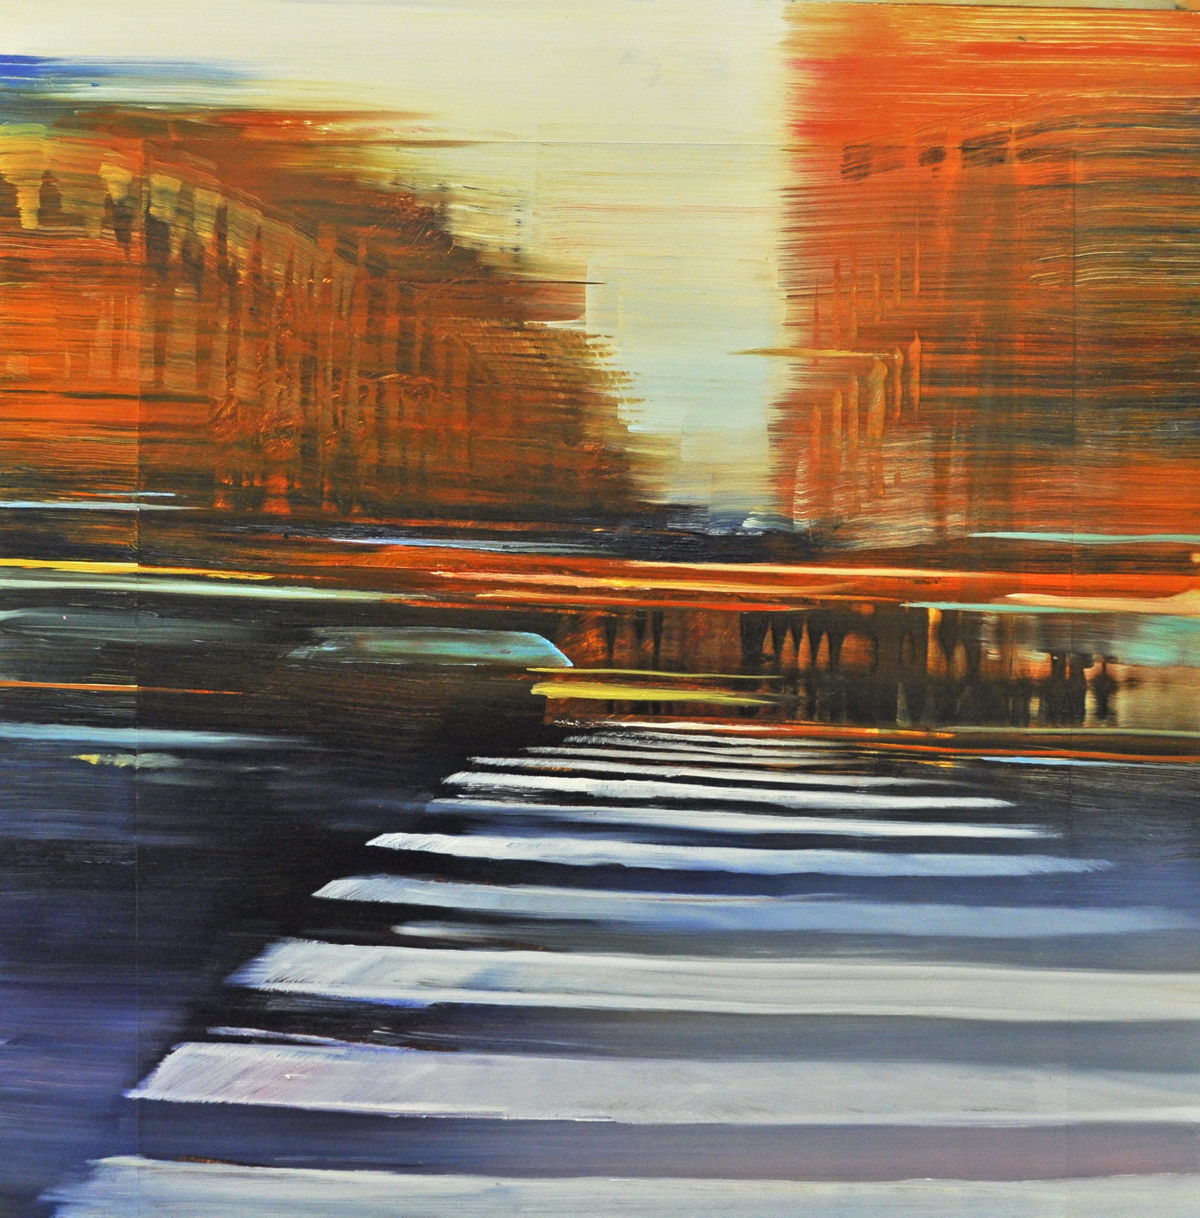 Dunlop_Paris Boulevard Rendezvous_oil on anodized aluminum_24x24.jpg